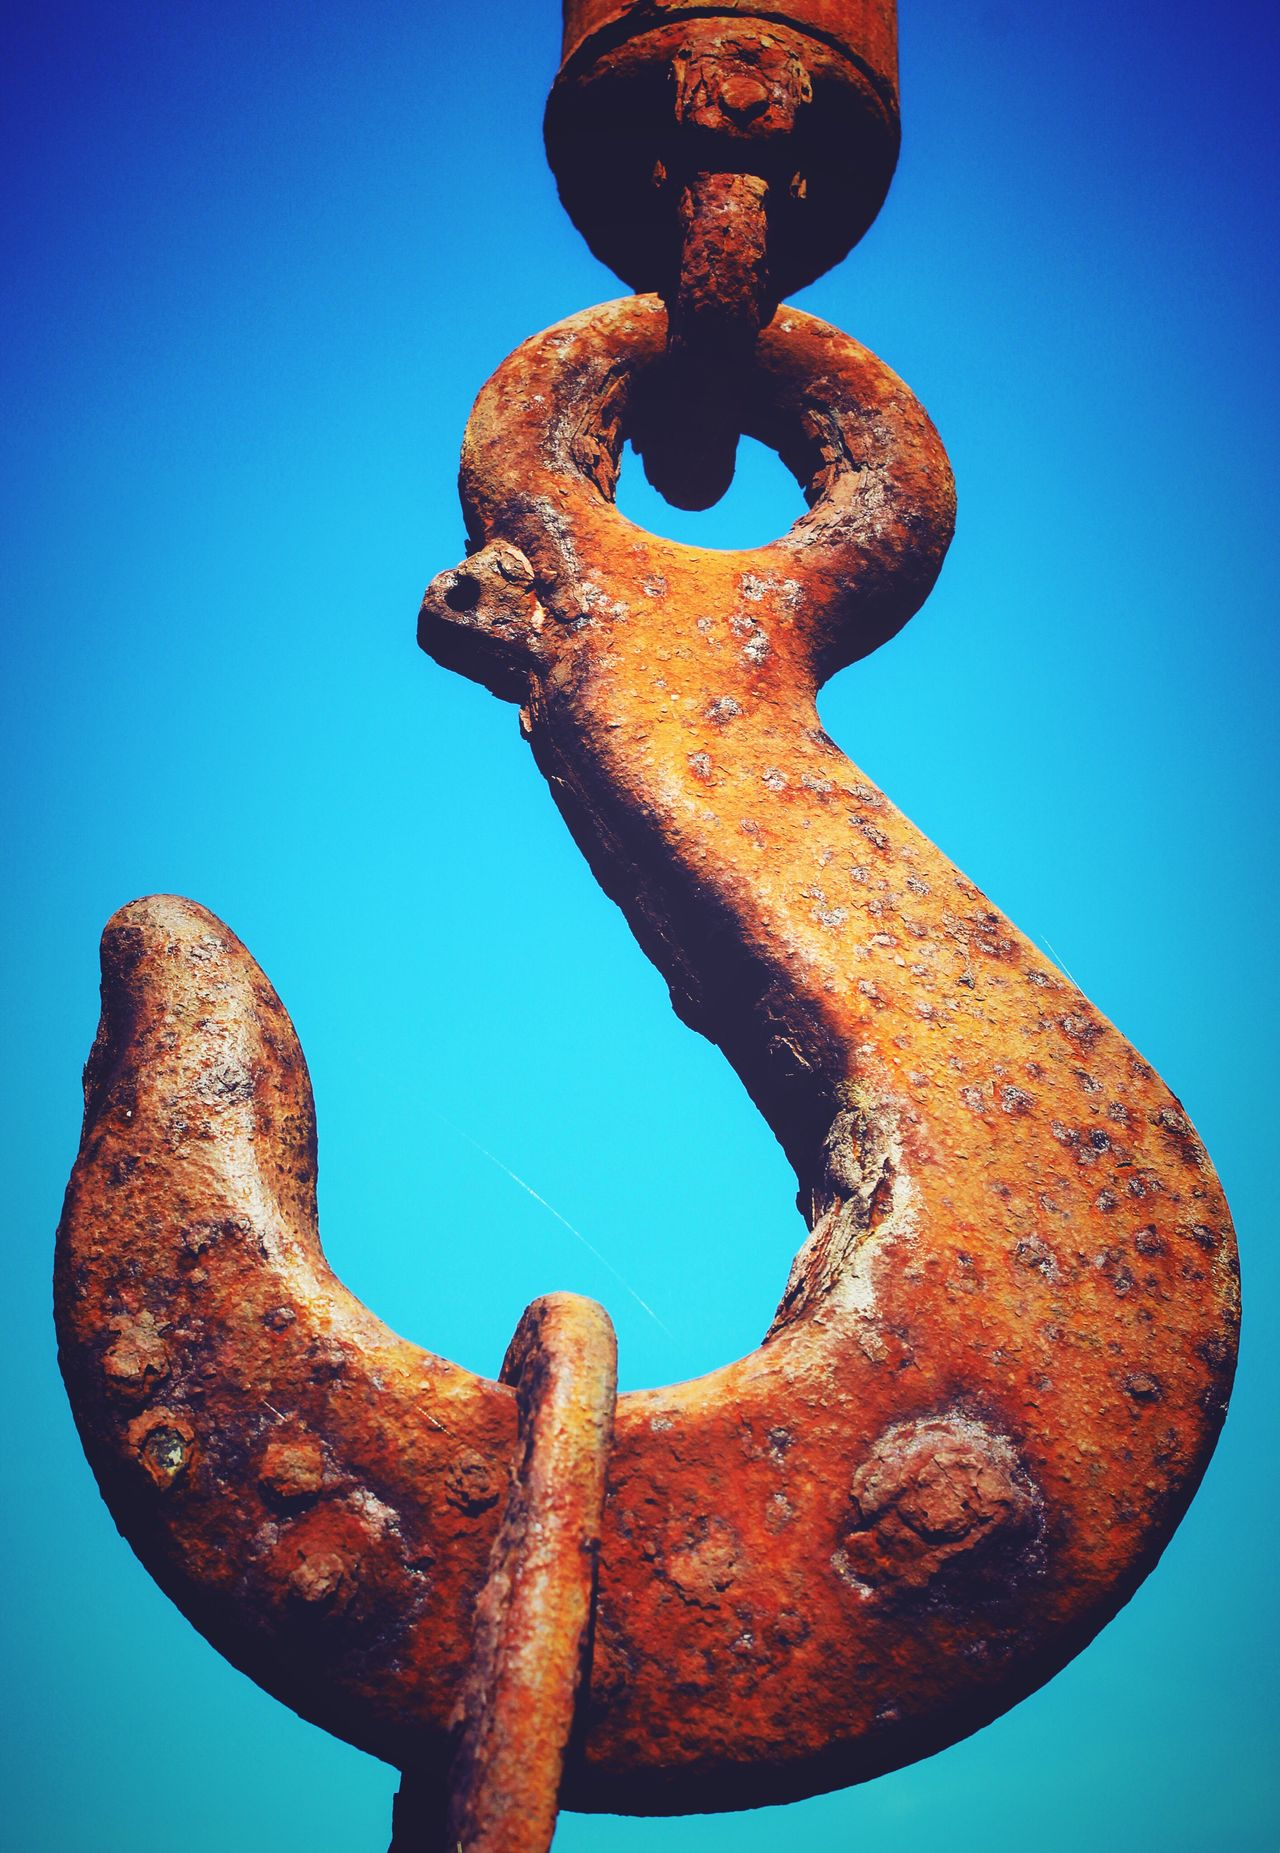 Rust Rusty Hook Metalwork Iphonephotography Iphone6s Mix Filter